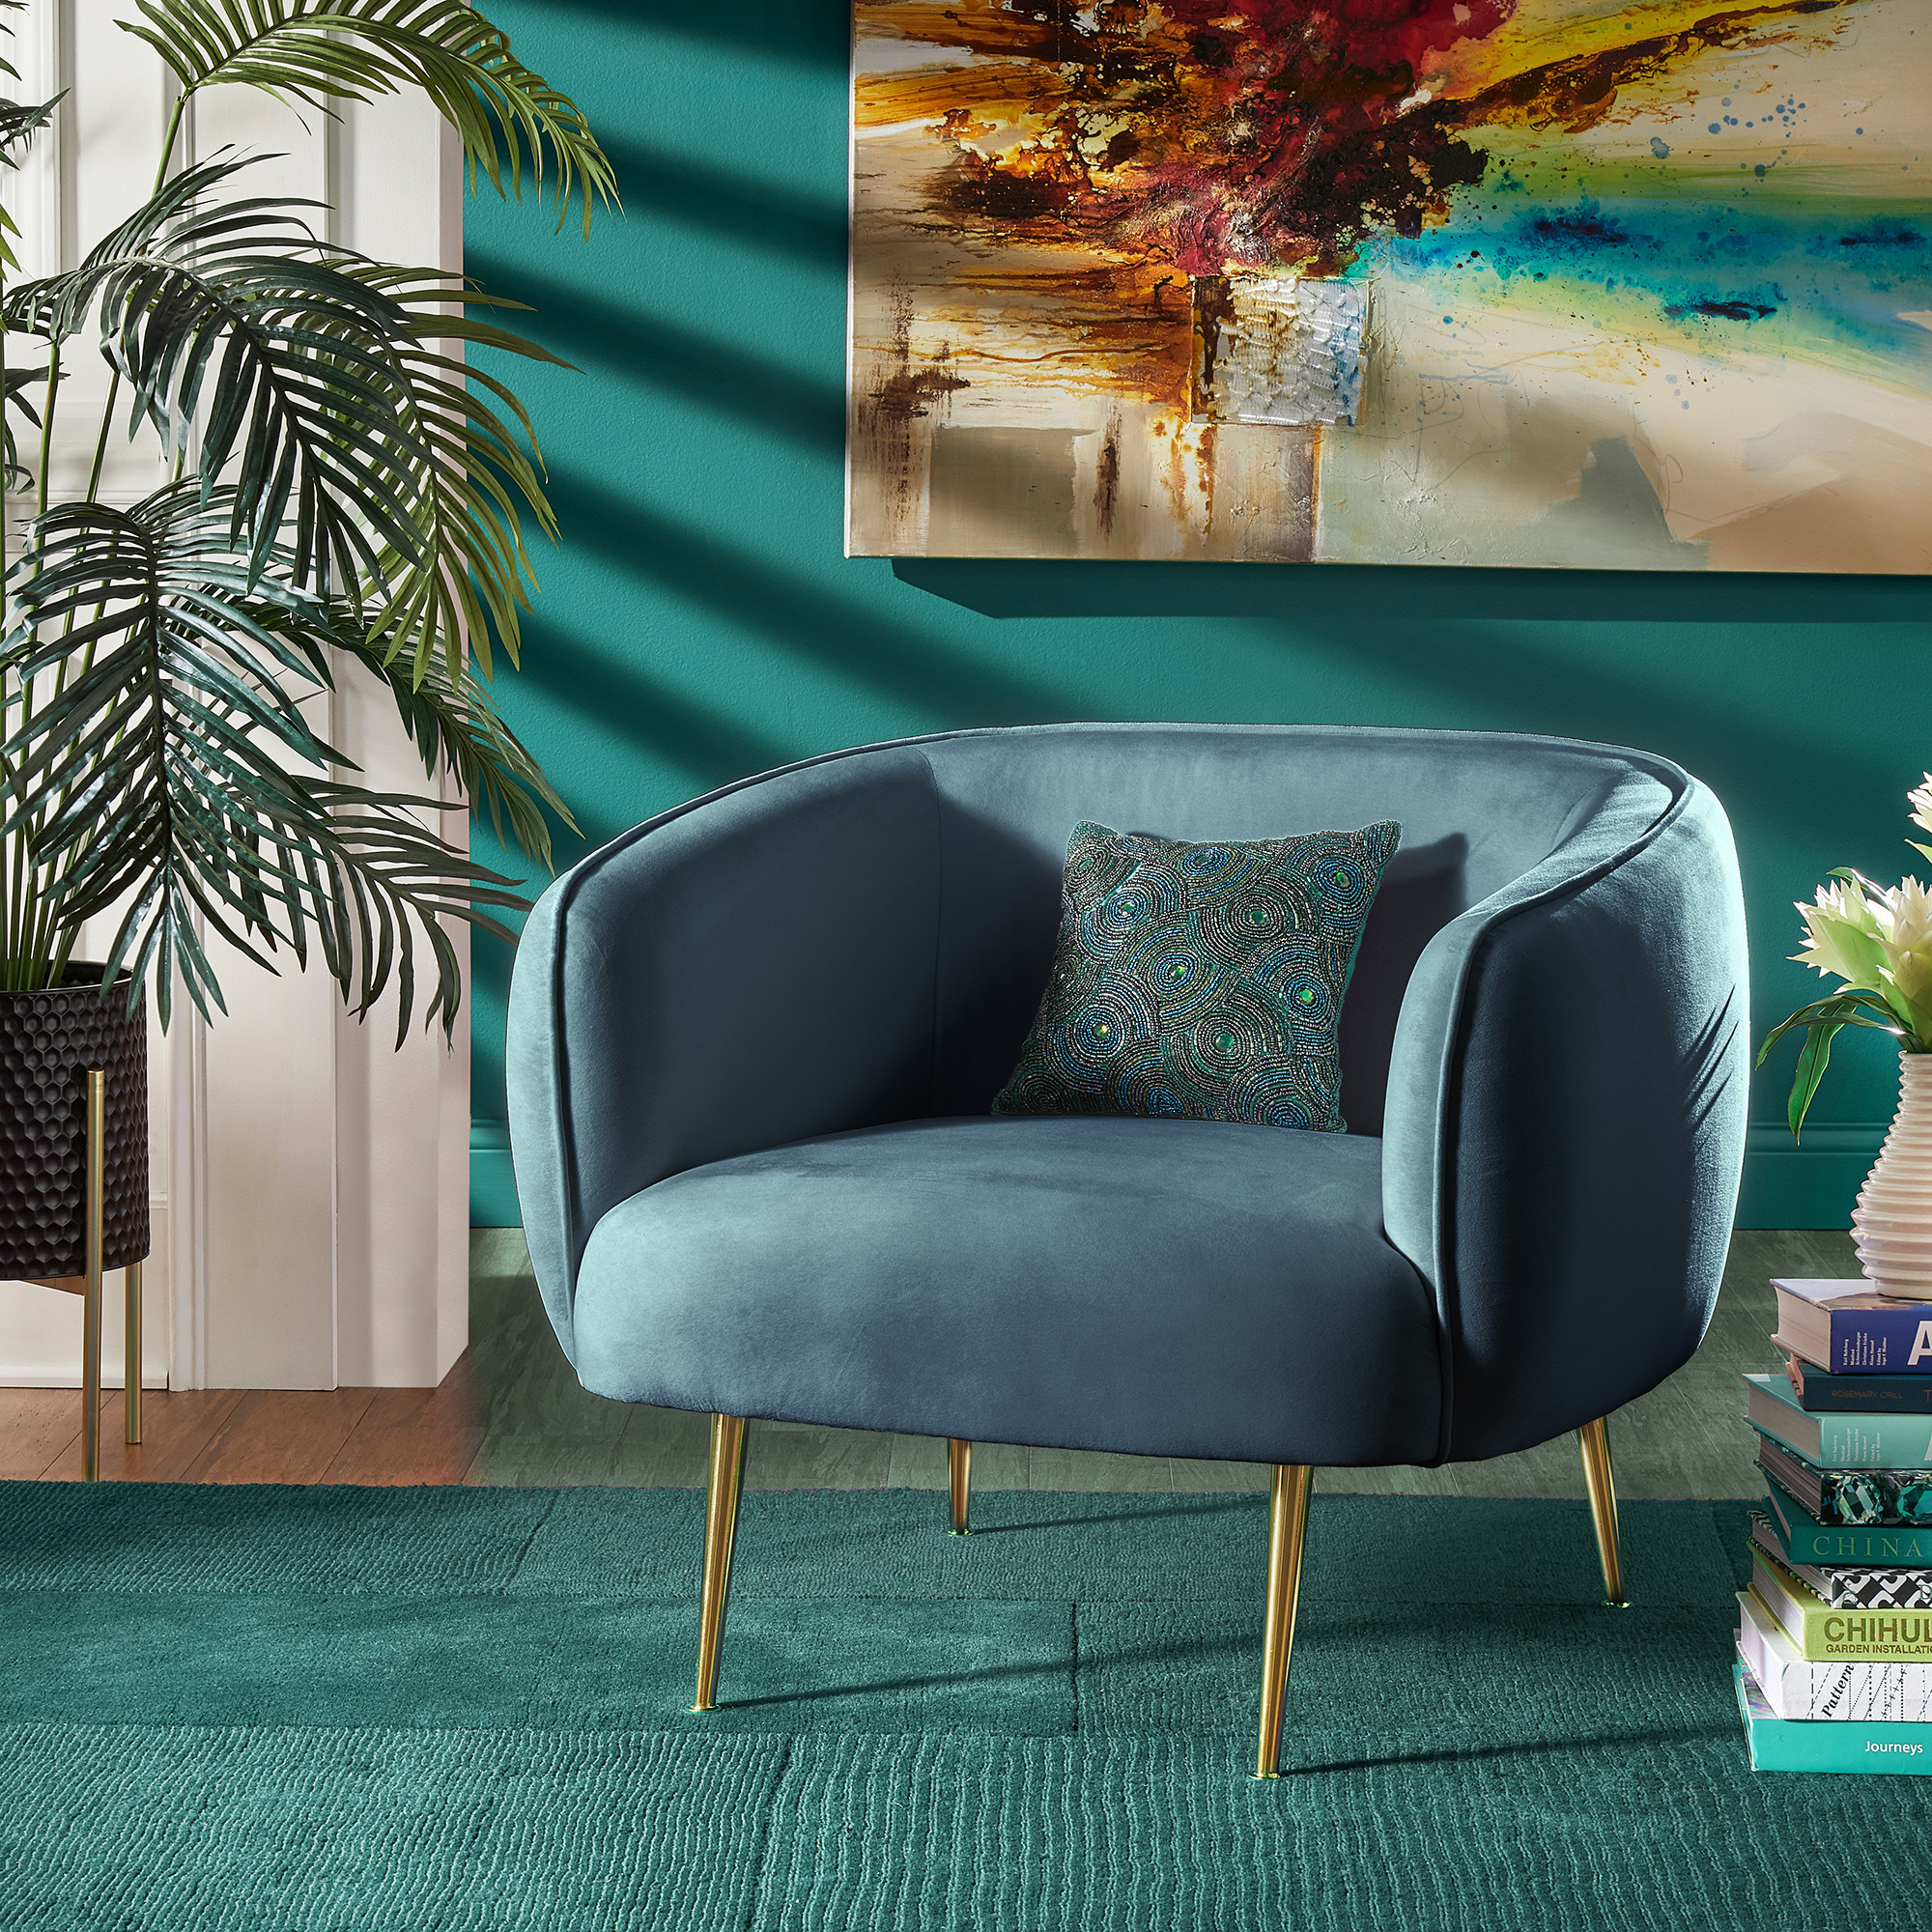 the velvet accent chair in blue with gold metal legs, books next to it, a blue rug underneath it, and a painting behind it.